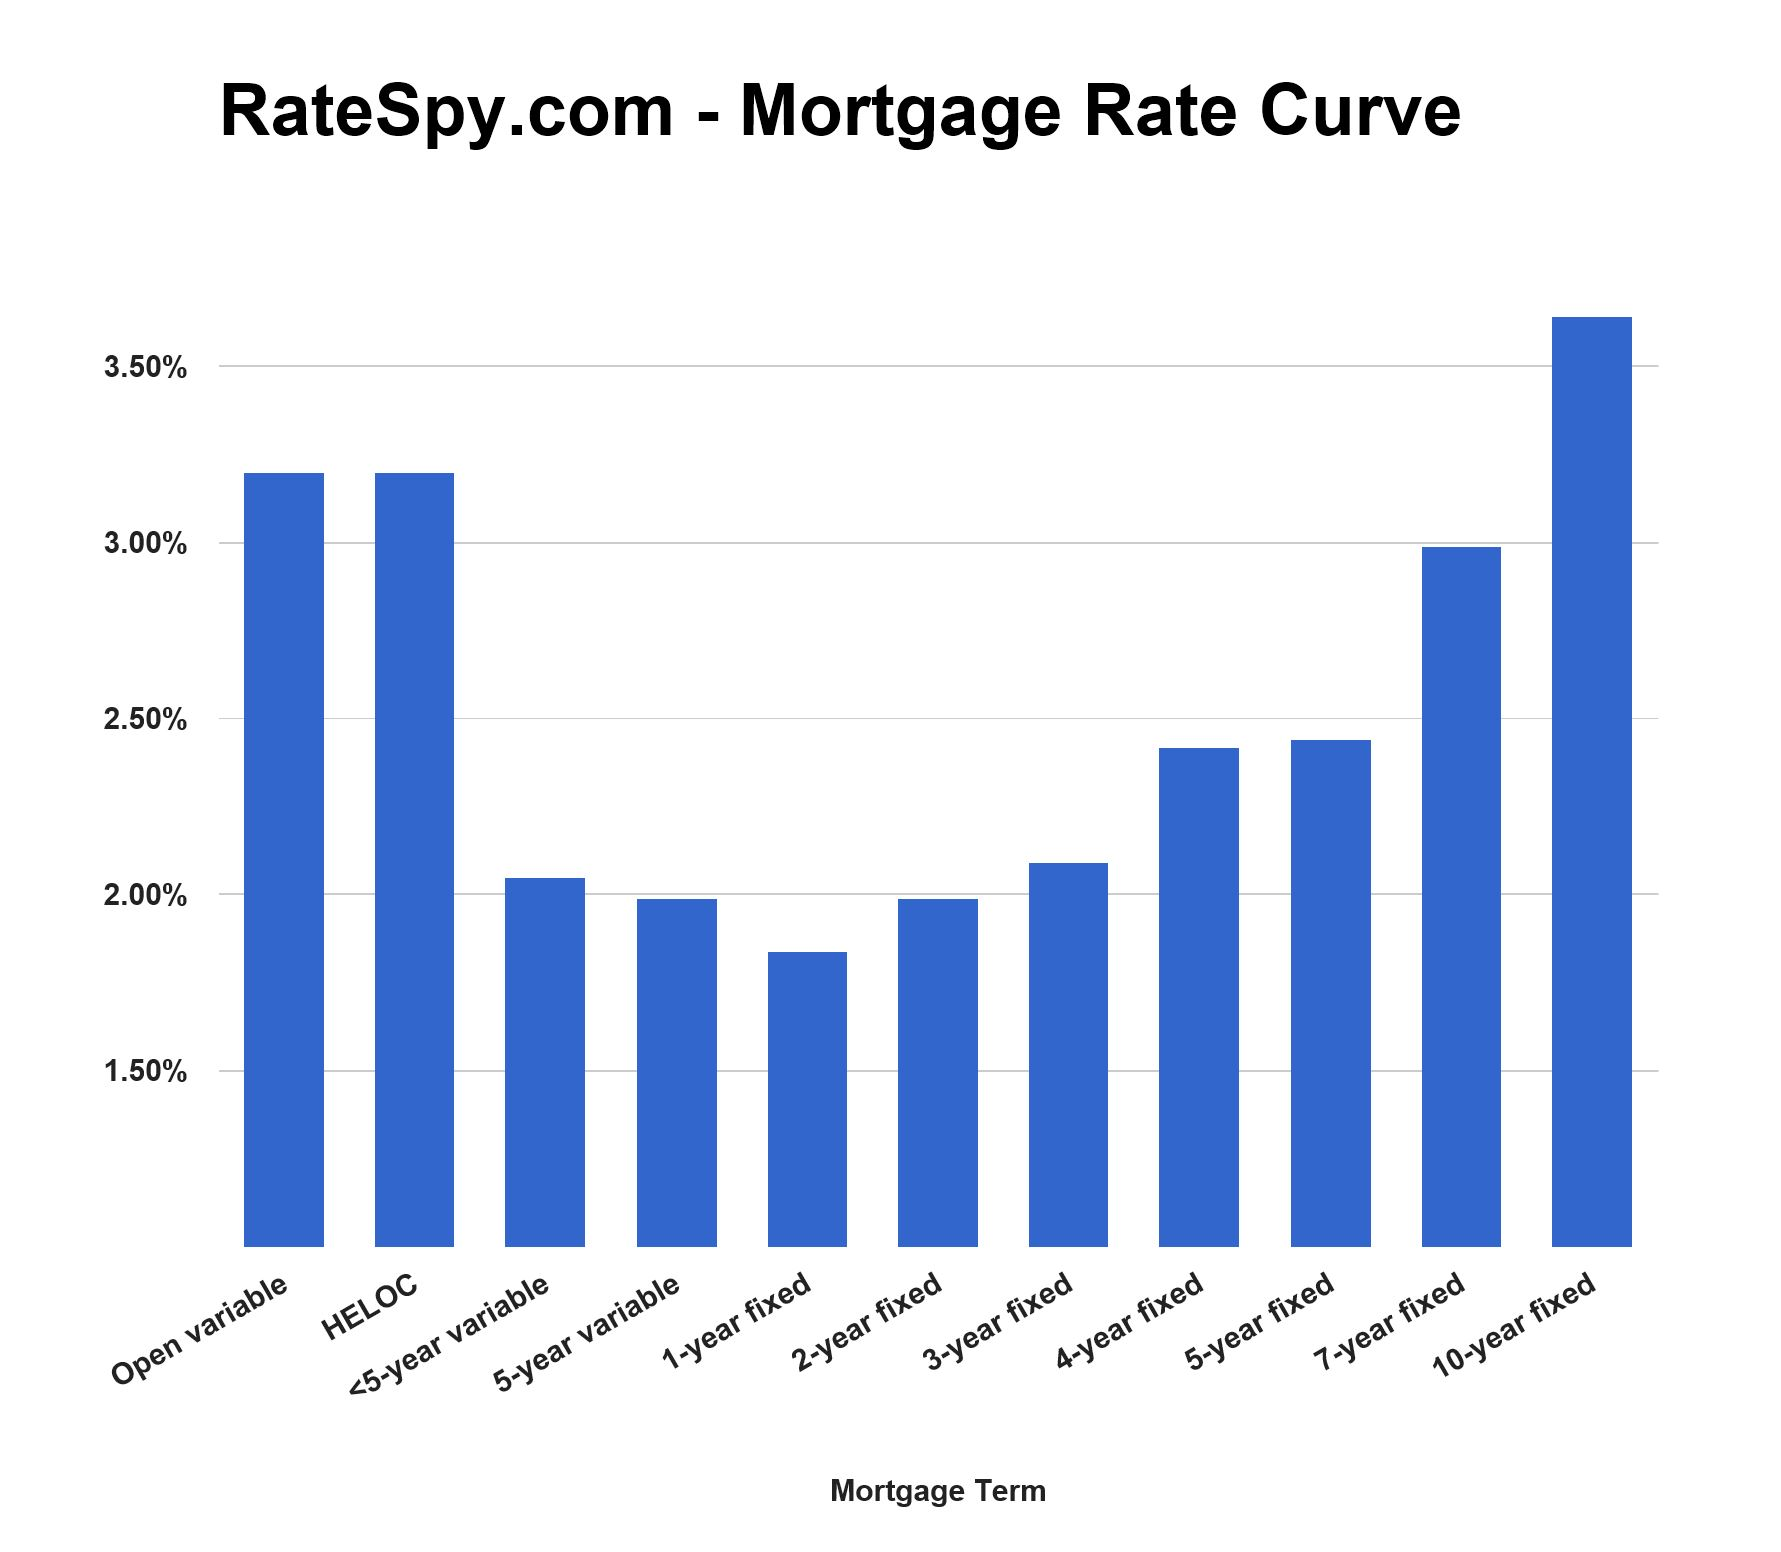 Mortgage rate curve